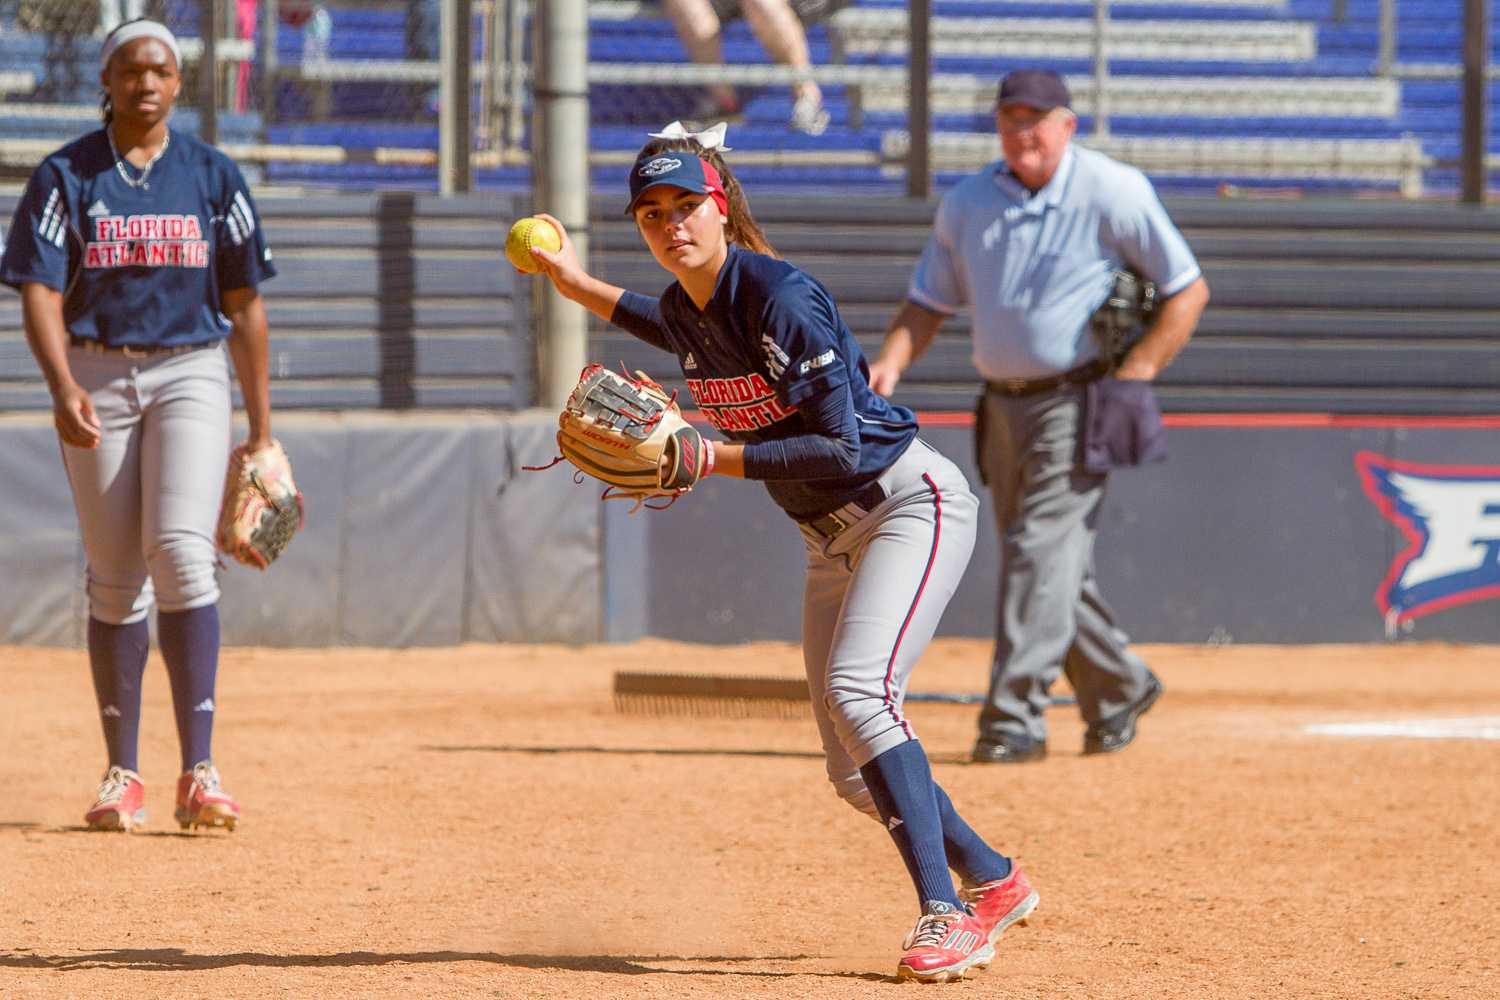 Junior infielder Melissa Martinez fields a ground ball during warm-ups before FAU's game against the University of Maryland. Martinez went 1 for 3 with a run scored.